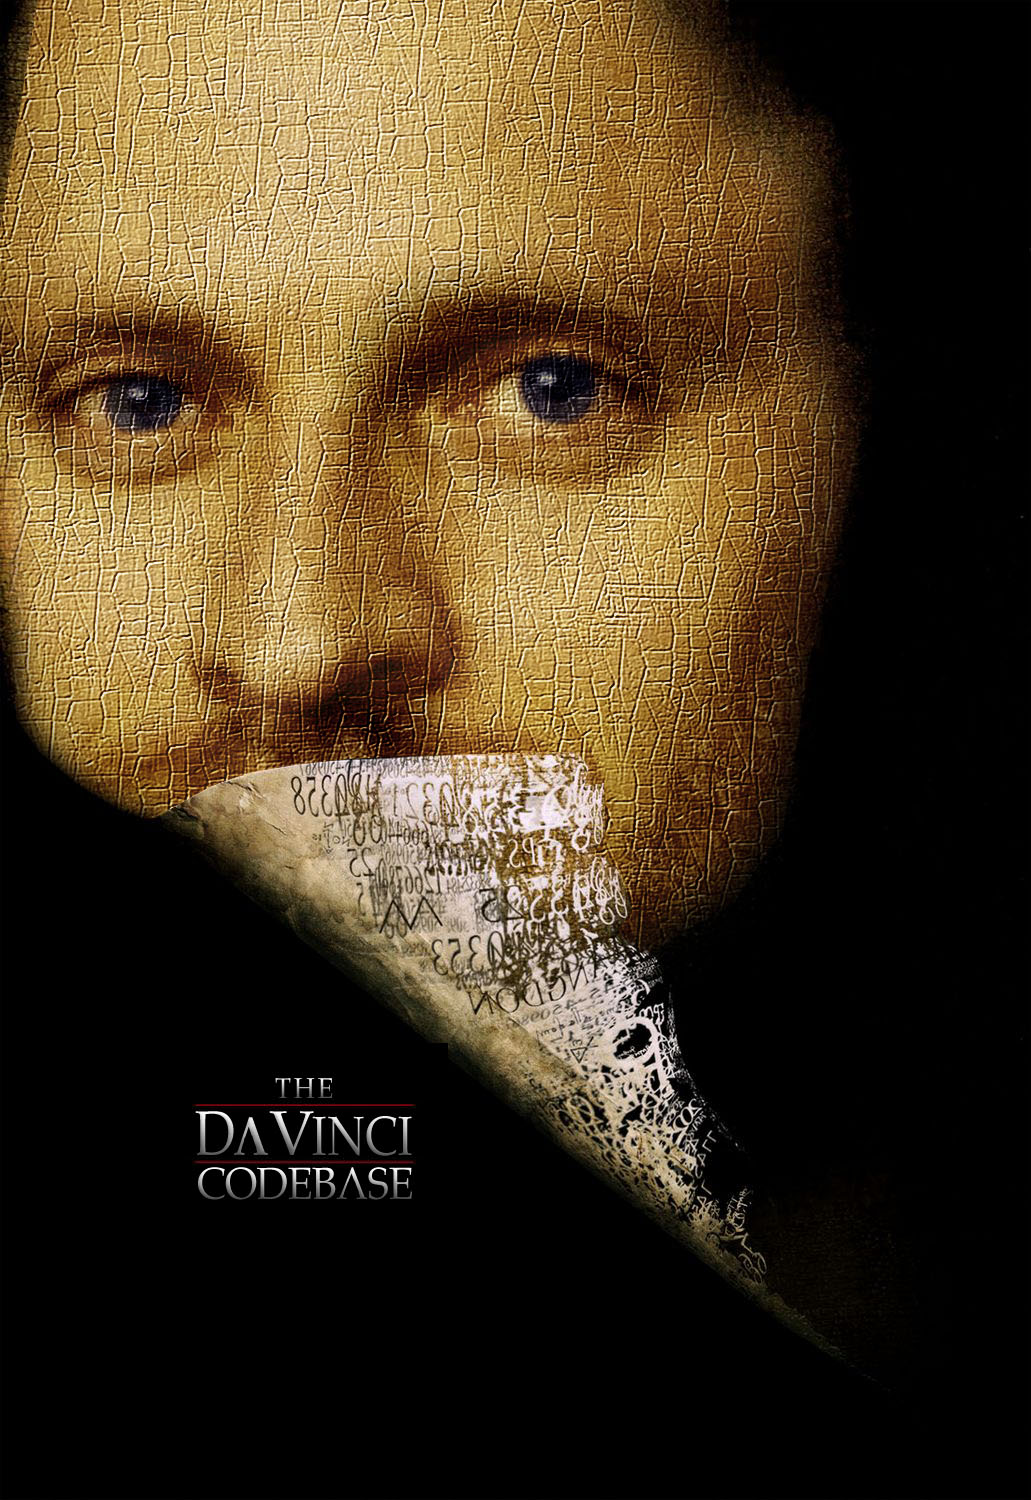 [The Da Vinci Codebase poster]